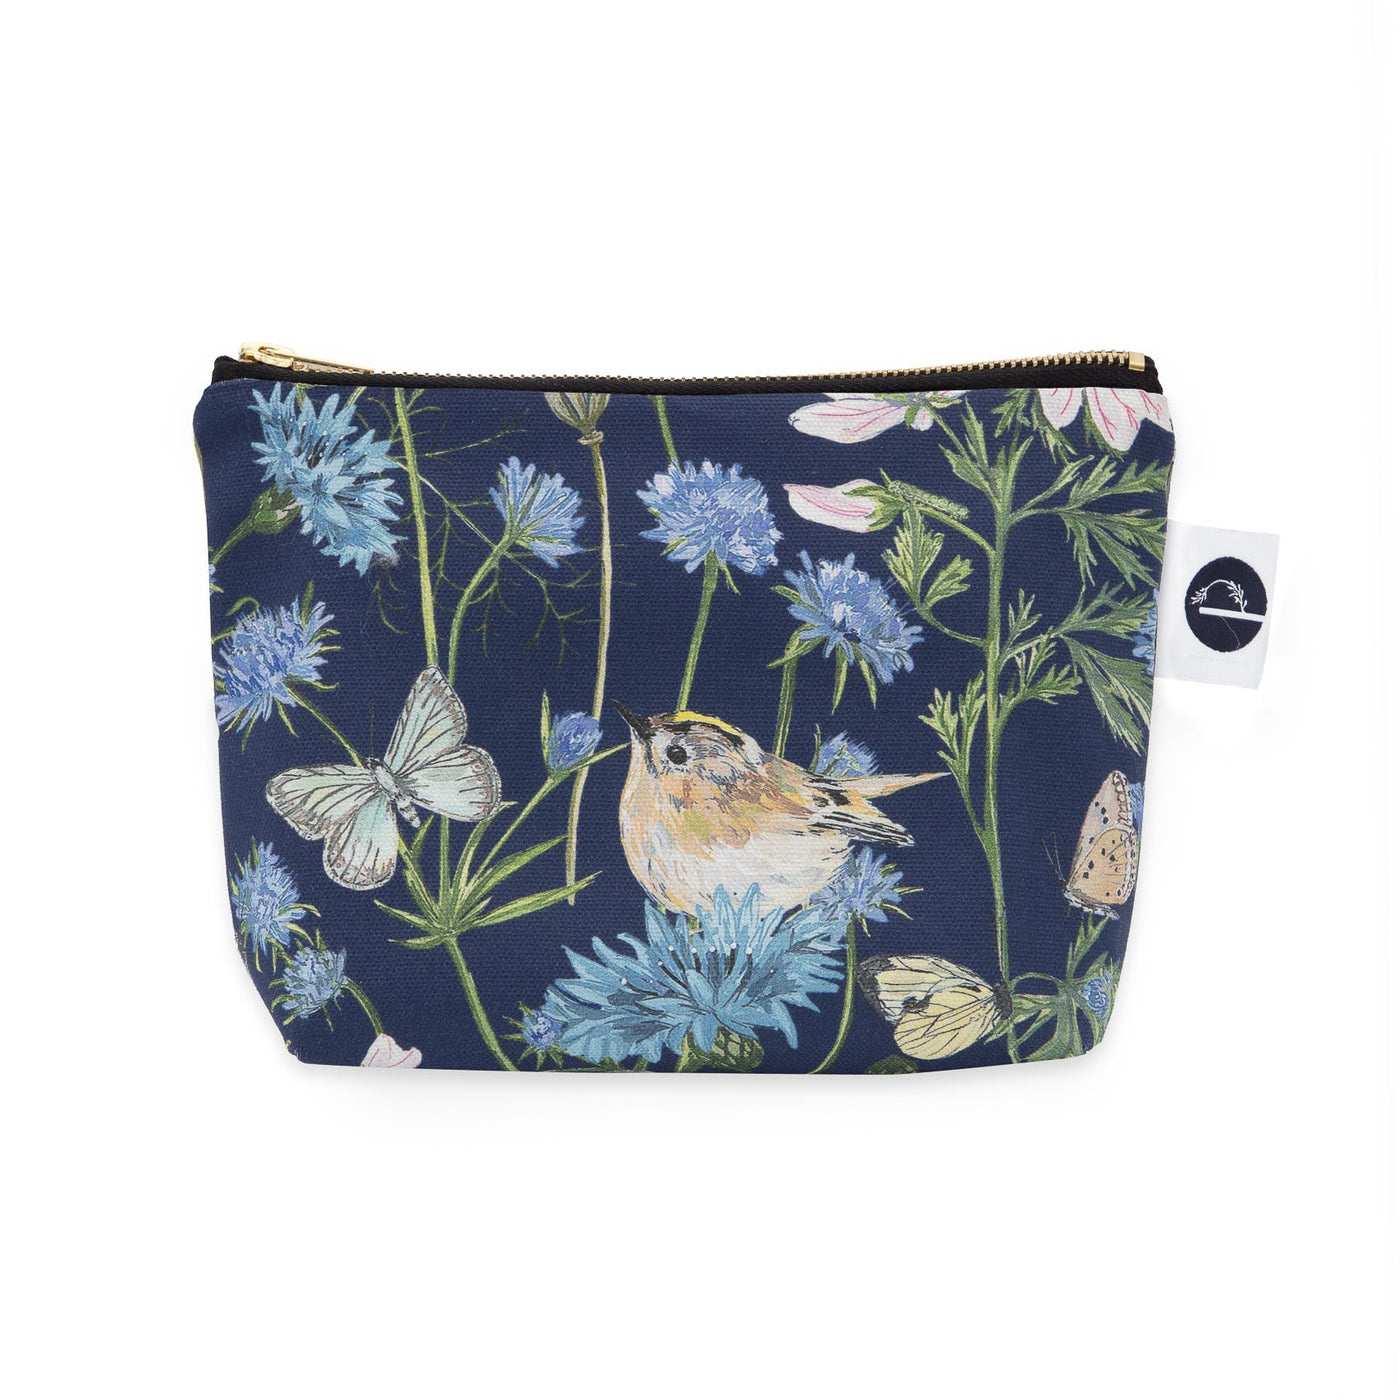 Goldcrest and Cornflower Small Make-up Bag - Navy